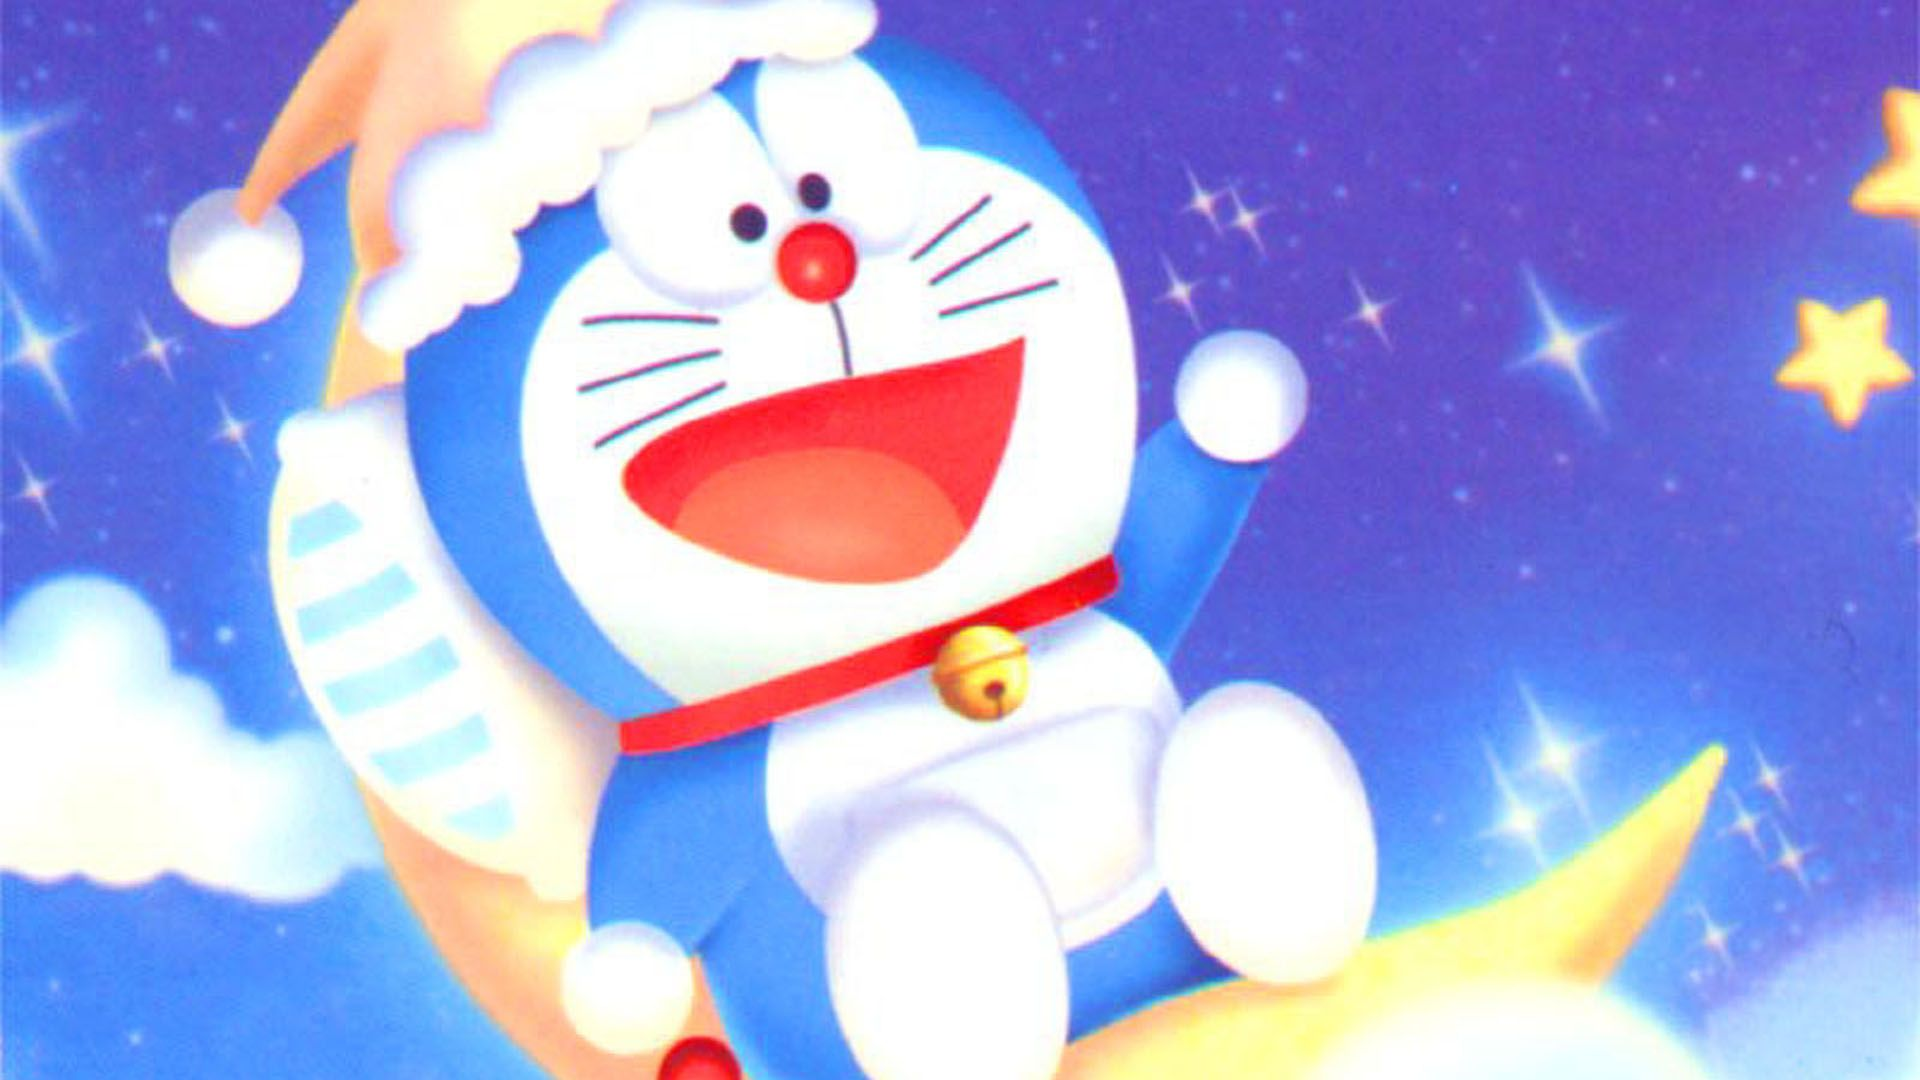 1920x1080 Doraemon 1920x1080 Wallpapers, 1920x1080 Wallpapers amp; Pictures ...